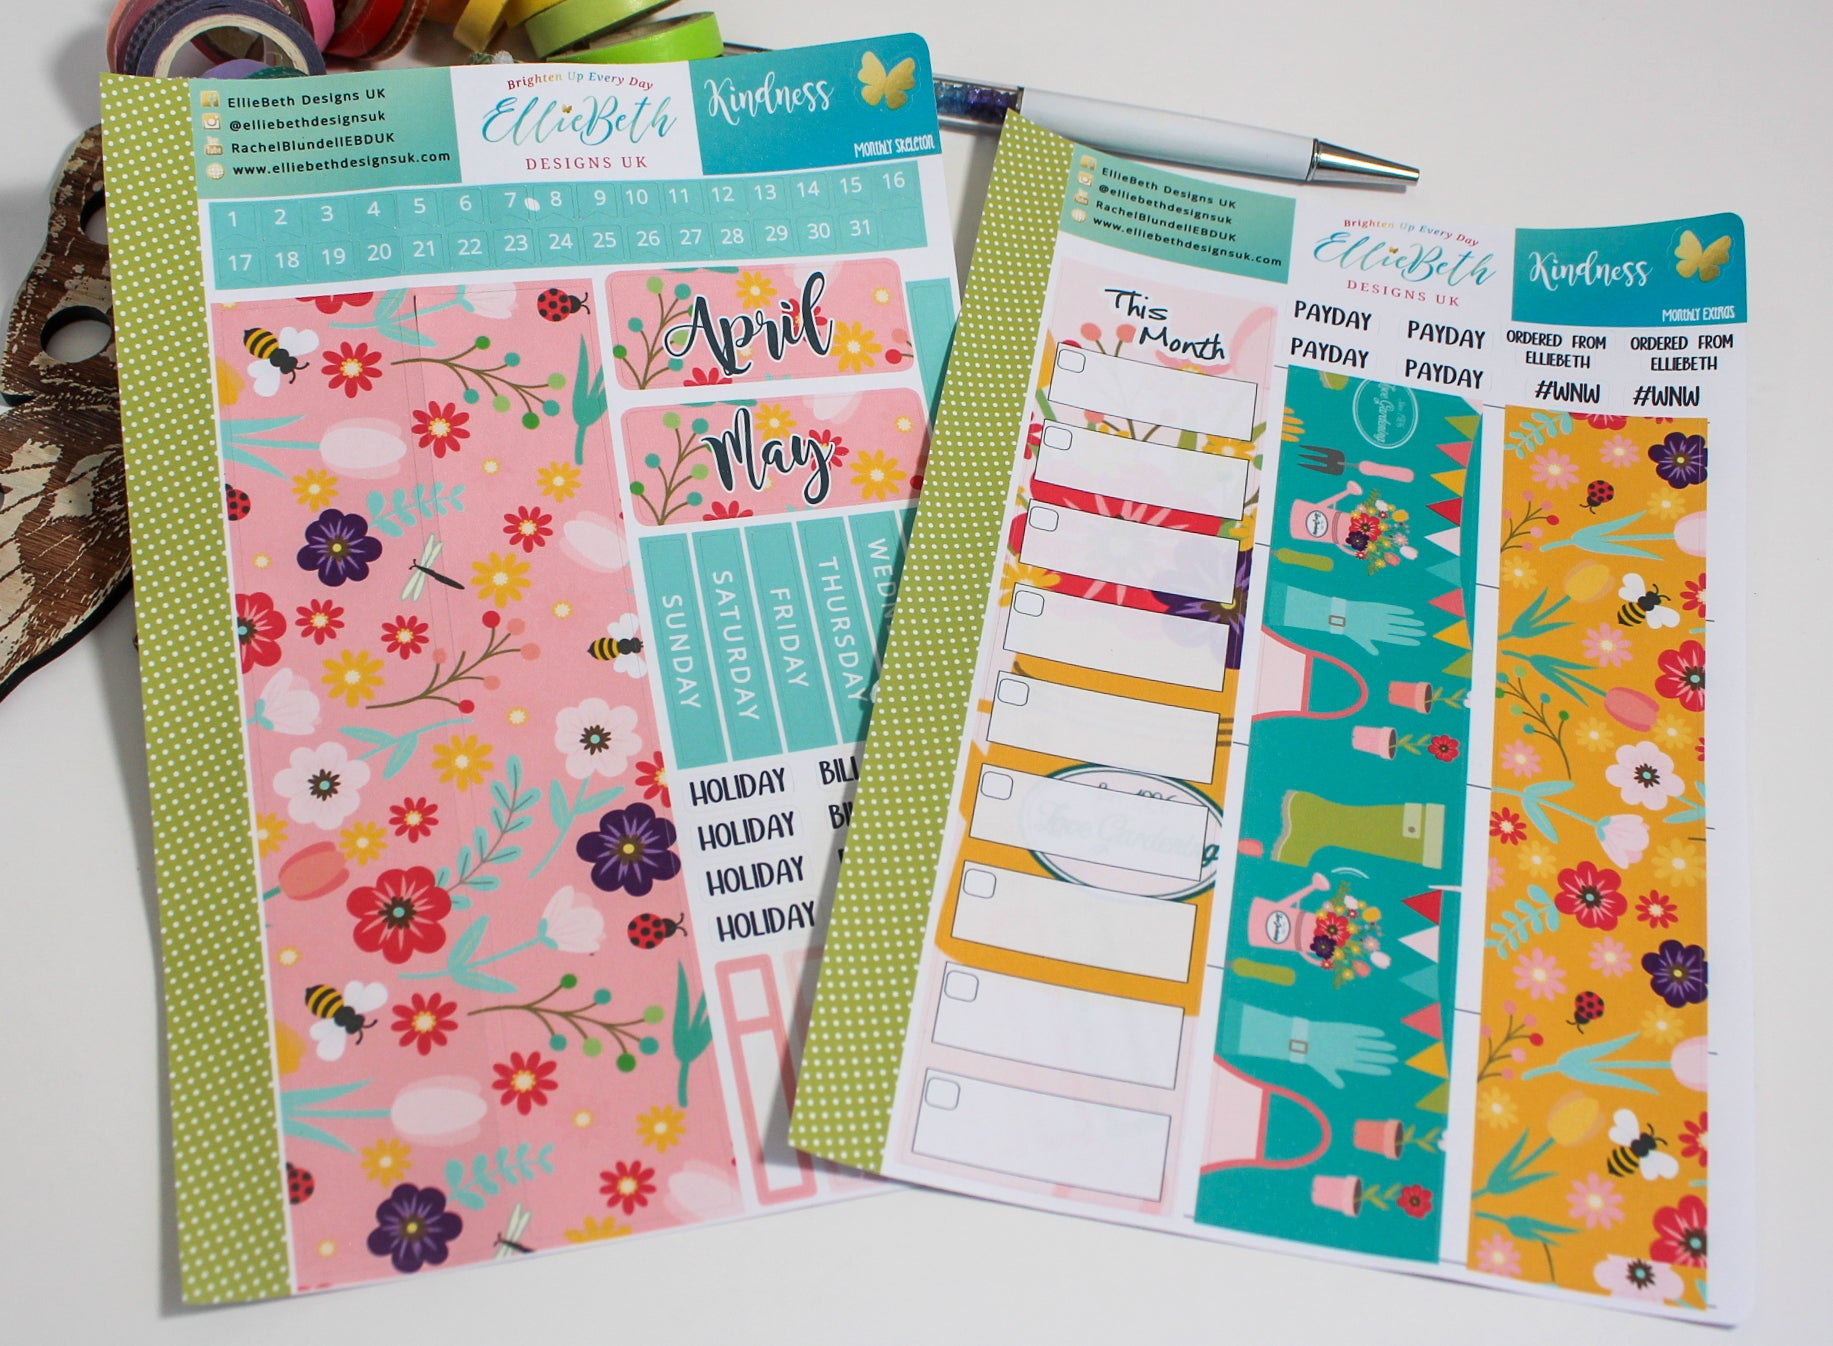 'Kindness' - Monthly View Kit -  A5 binder ready planner stickers